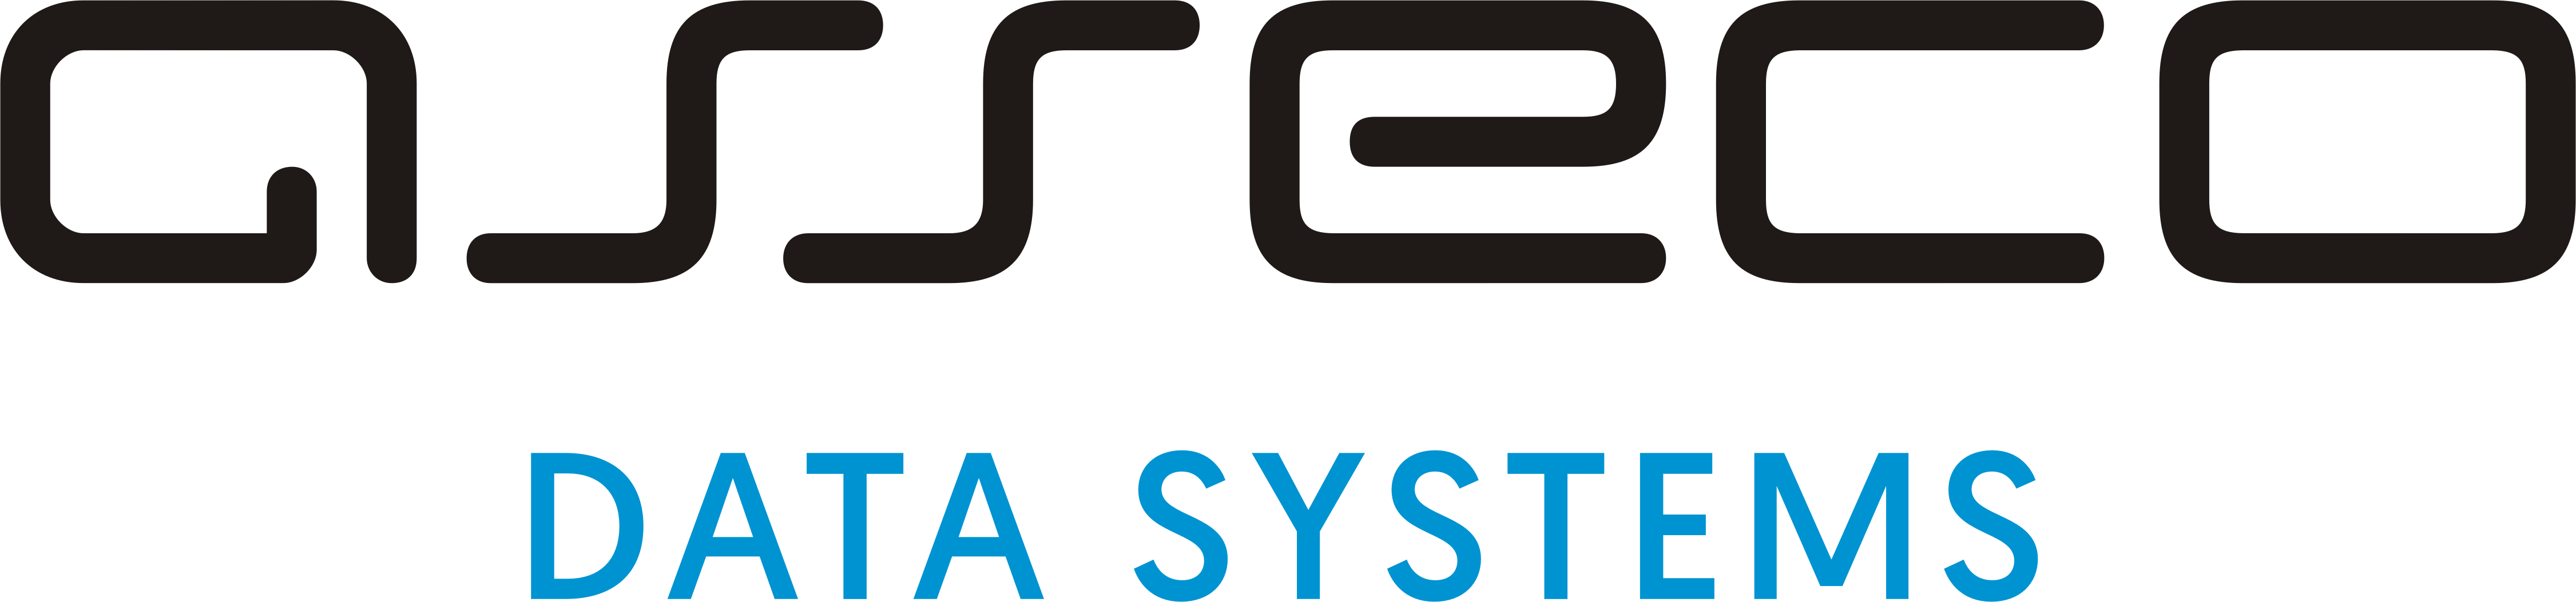 Asseco Data Systems logo